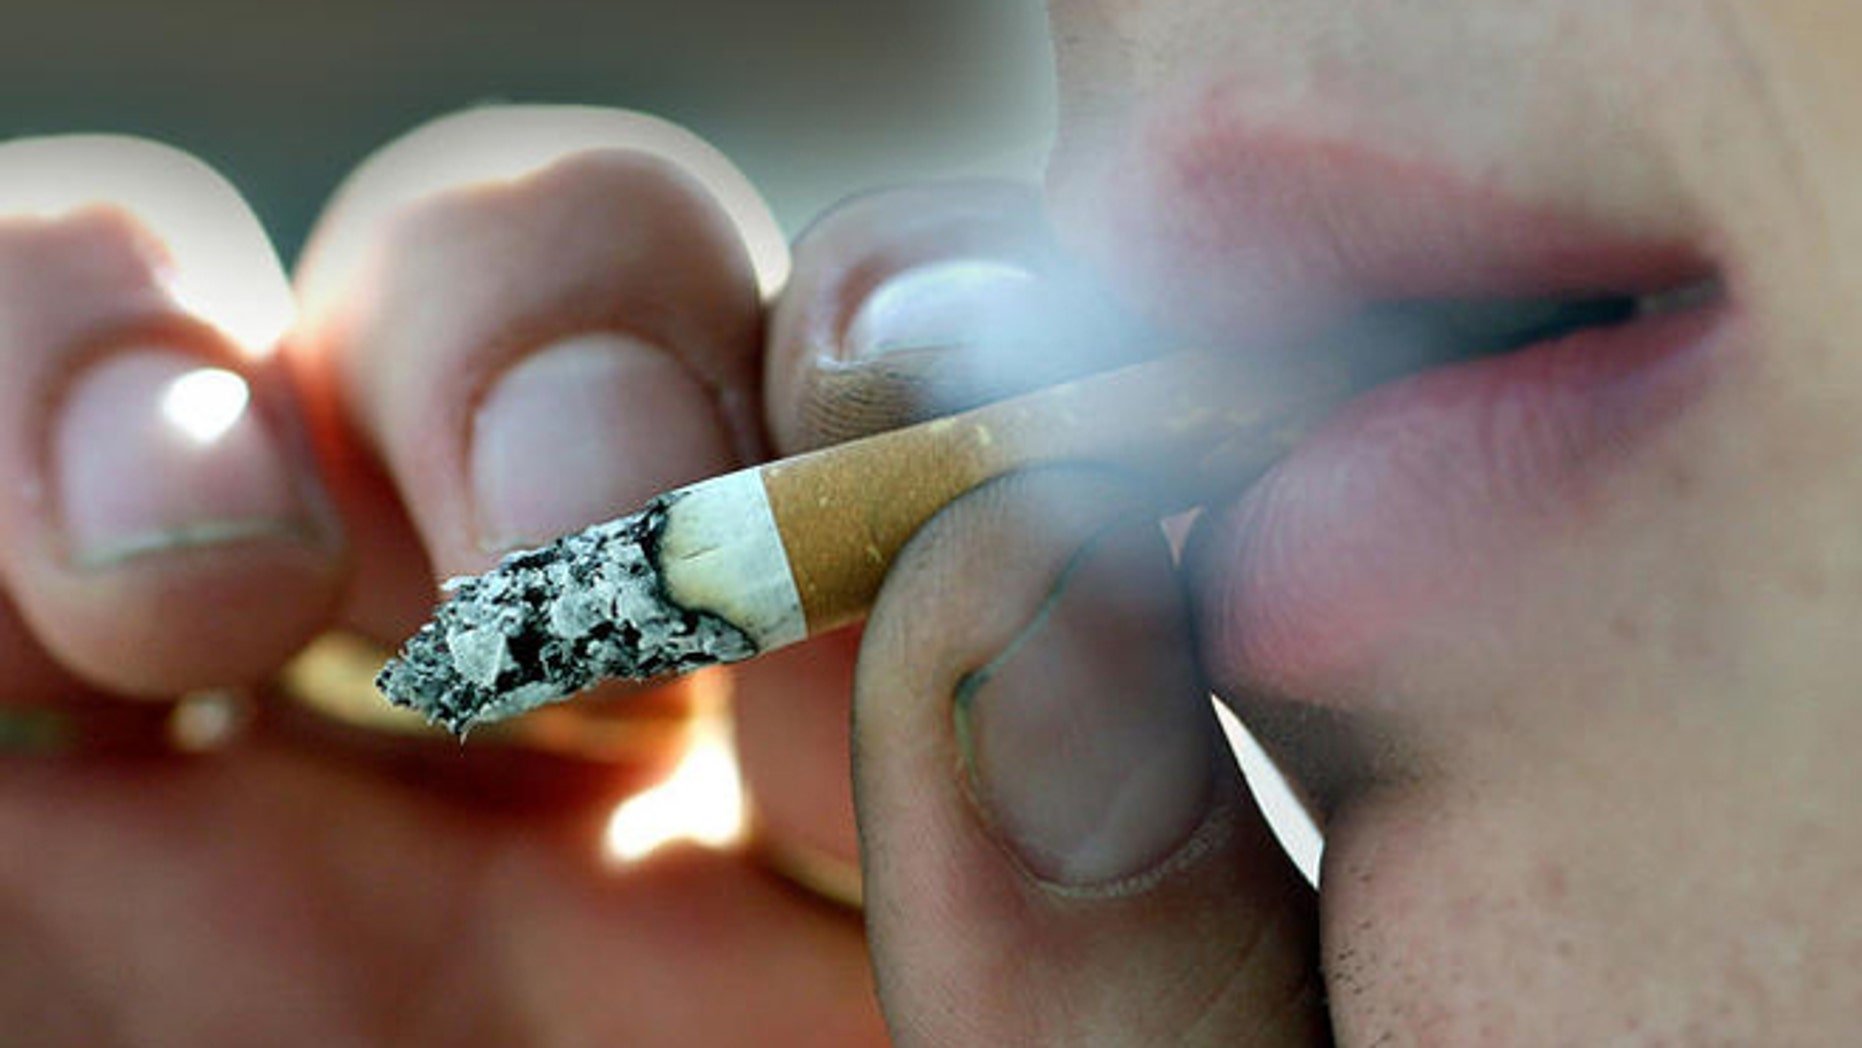 A person smokes outside his place of work in Belfast, Northern Ireland, Monday, April, 30, 2007.  A smoking ban  in all public places has come into effect from Monday in Northern Ireland.  (AP Photo/Peter Morrison)